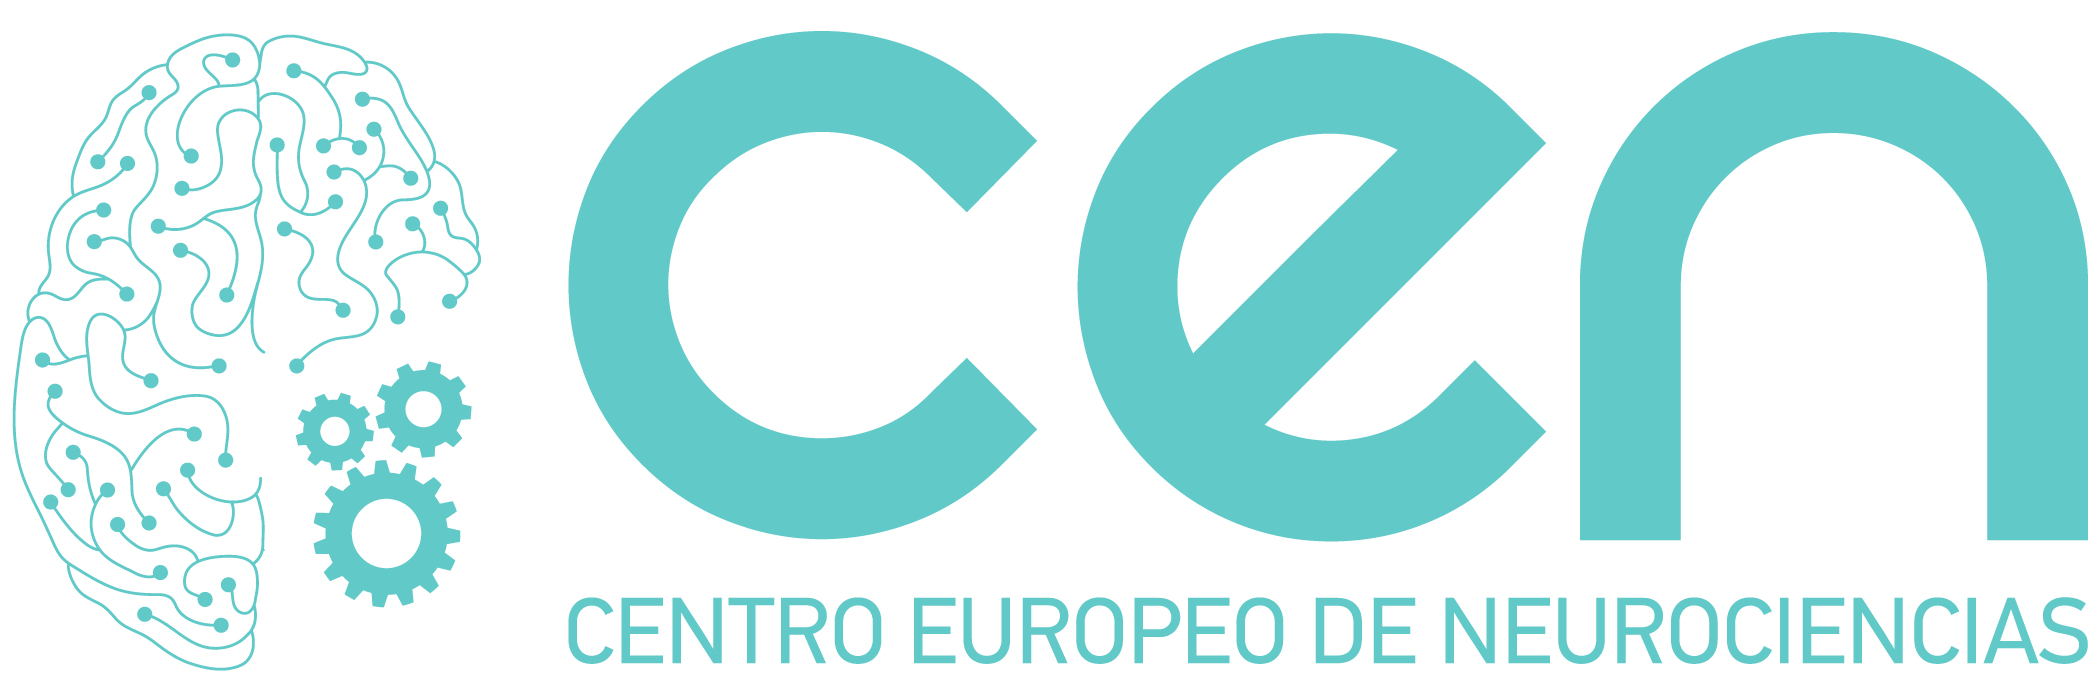 Logo de Centro Europeo de Neurociencias CEN